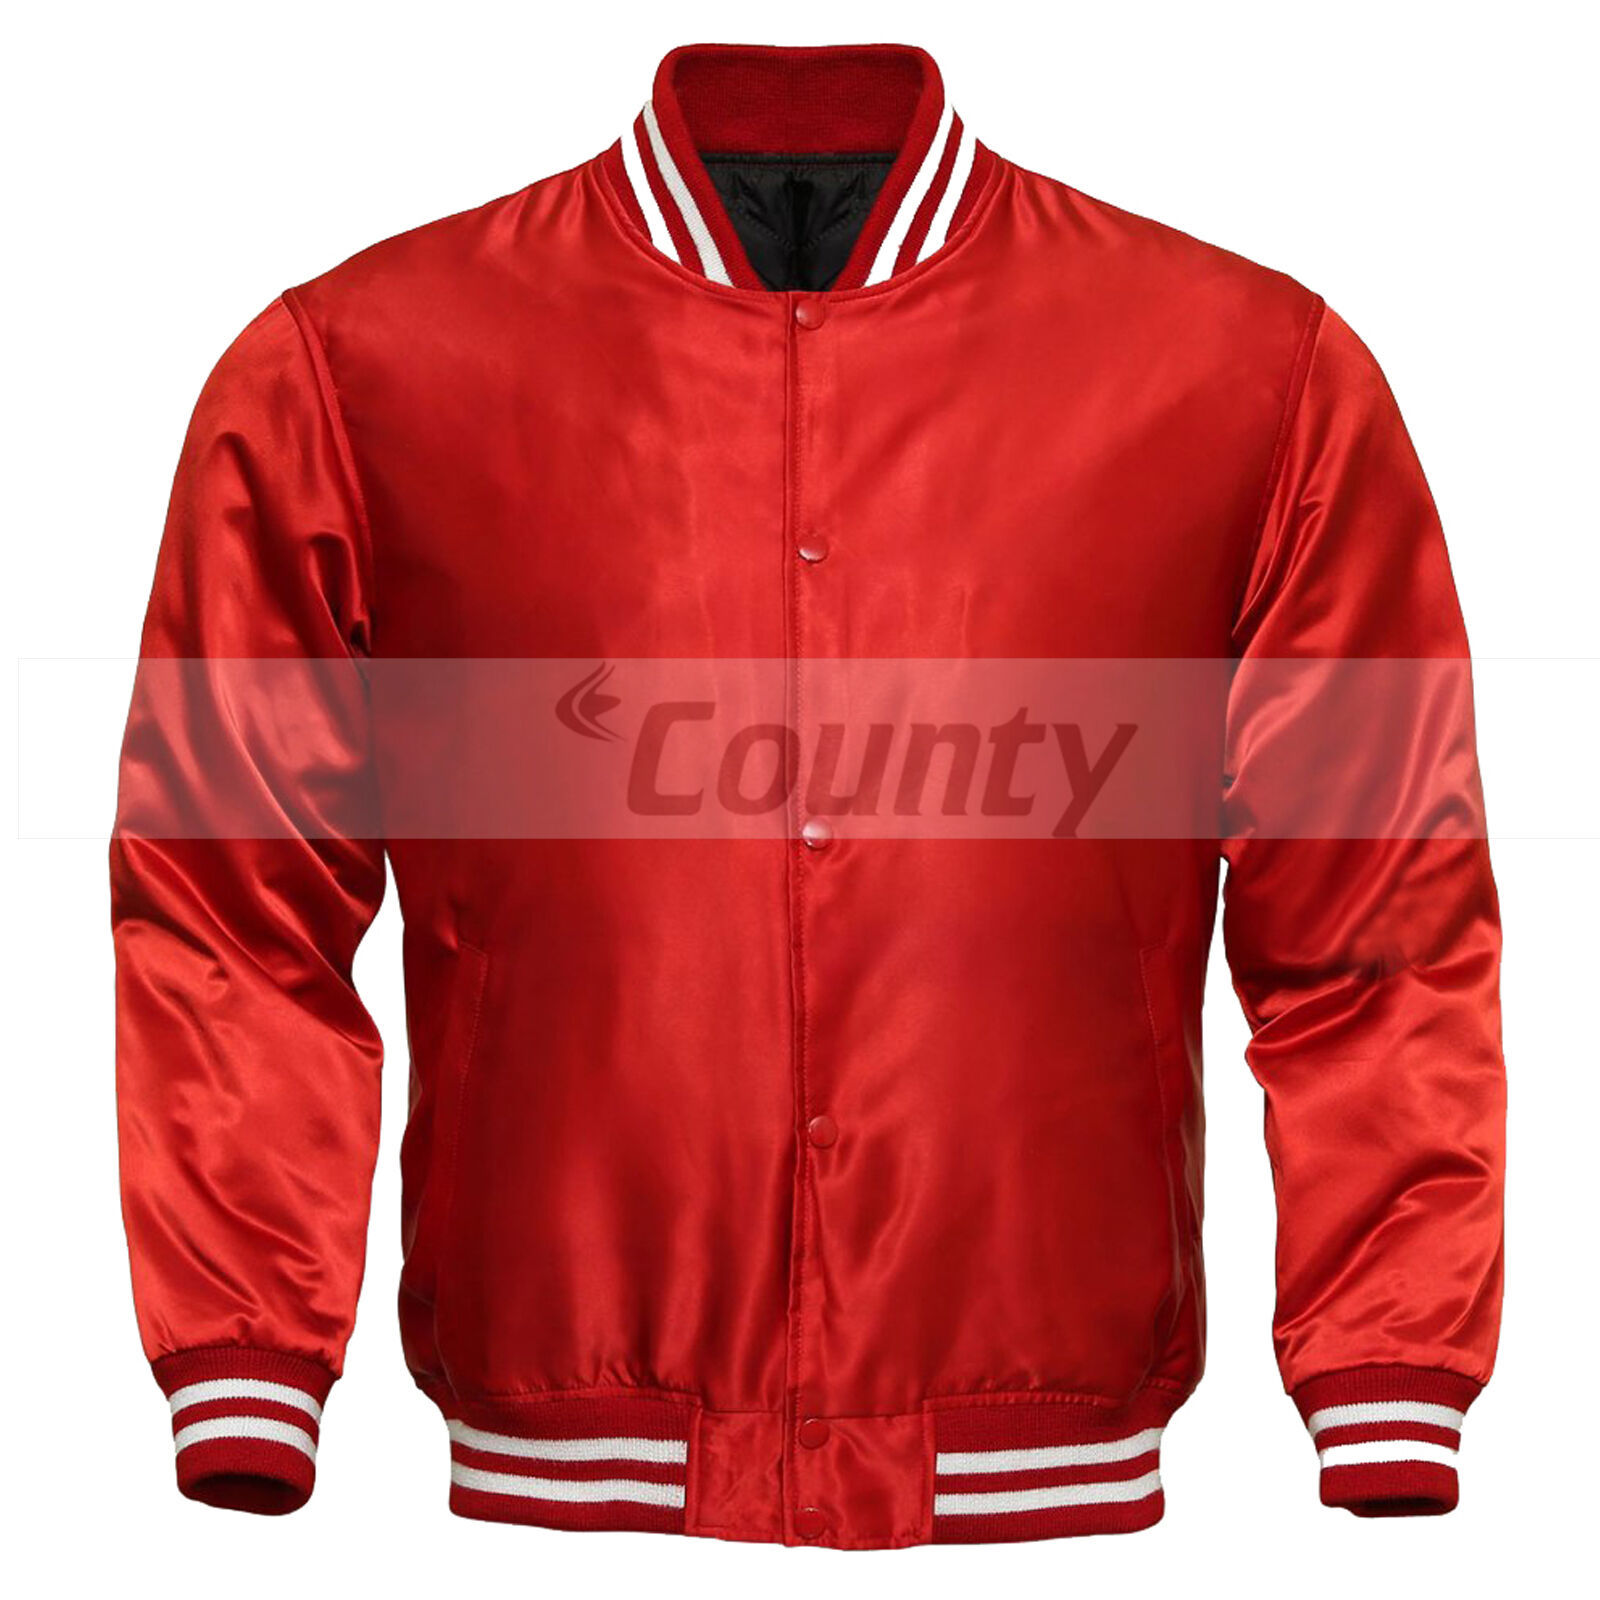 Primary image for New Letterman Baseball College Varsity Bomber Super Jacket Sports Wear Red Satin